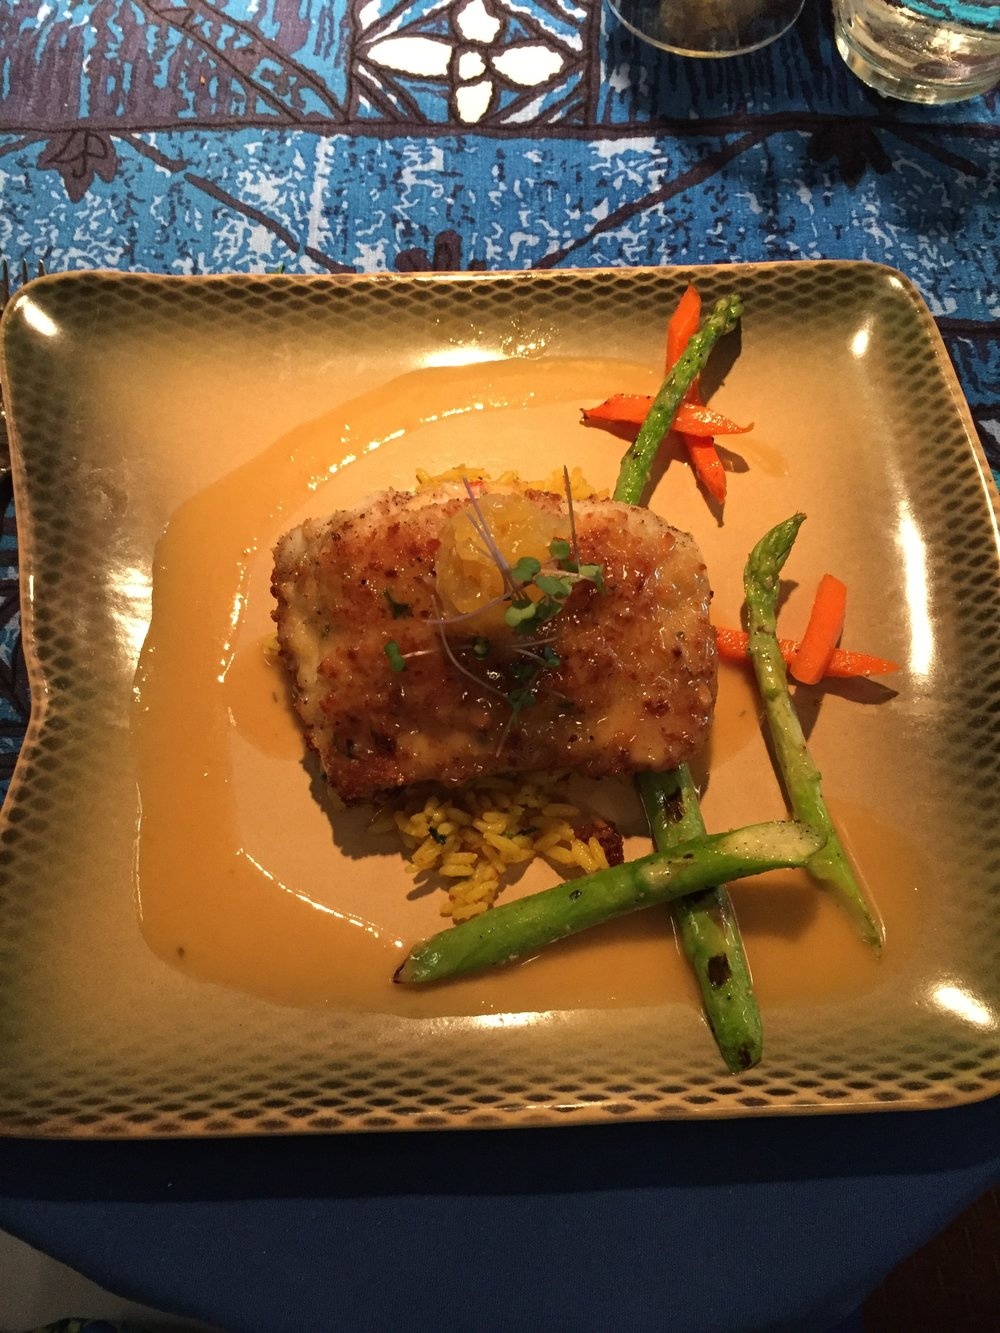 Mahimahi: Caught by Alan Cadiz trolling with live Opelu along the north shore, stuffed with Deep Sea Red Crab and baked in a Macadamia Nut crust. The perfect combination of flavours and cooked to perfection!!